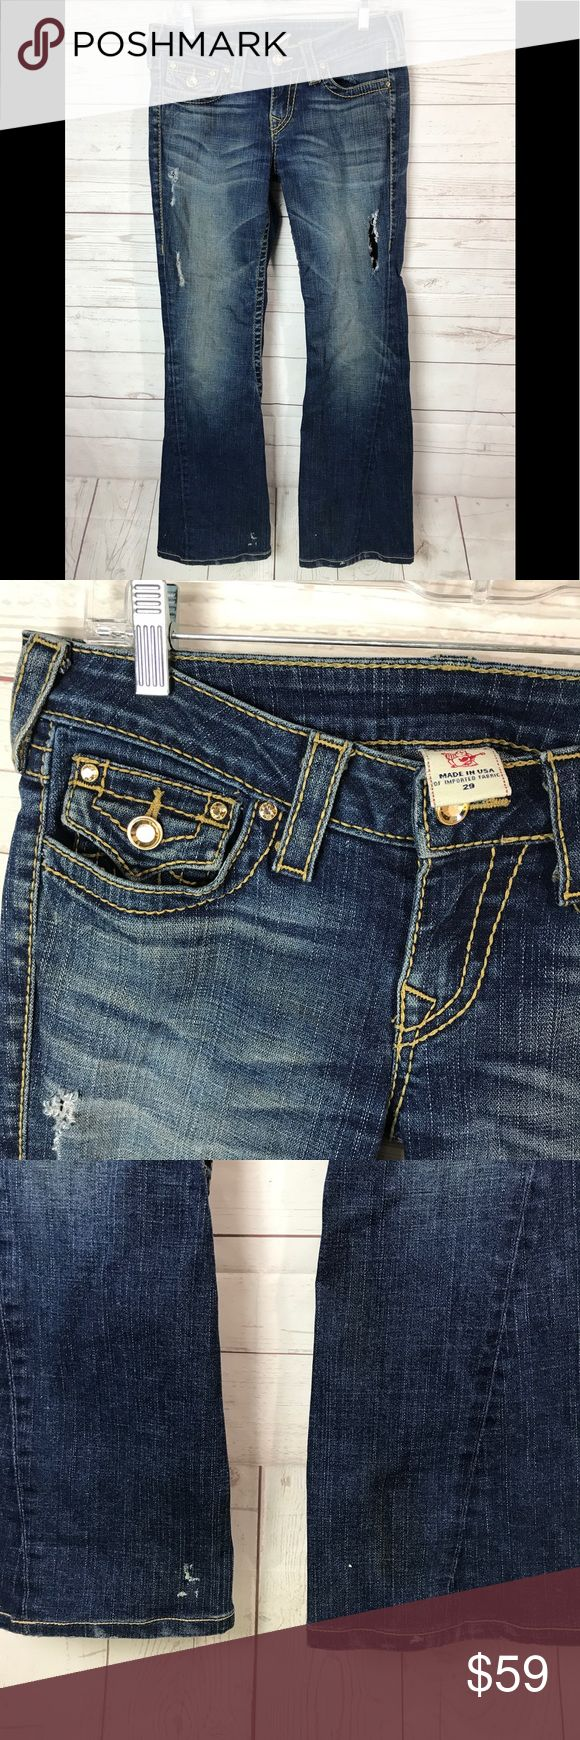 True Religion Jean size 29 One button on the left pocket is missing see last picture  White stain as shown other in good shape Lot Of uses left. Non smoke fast shipping True Religion Jeans Flare & Wide Leg